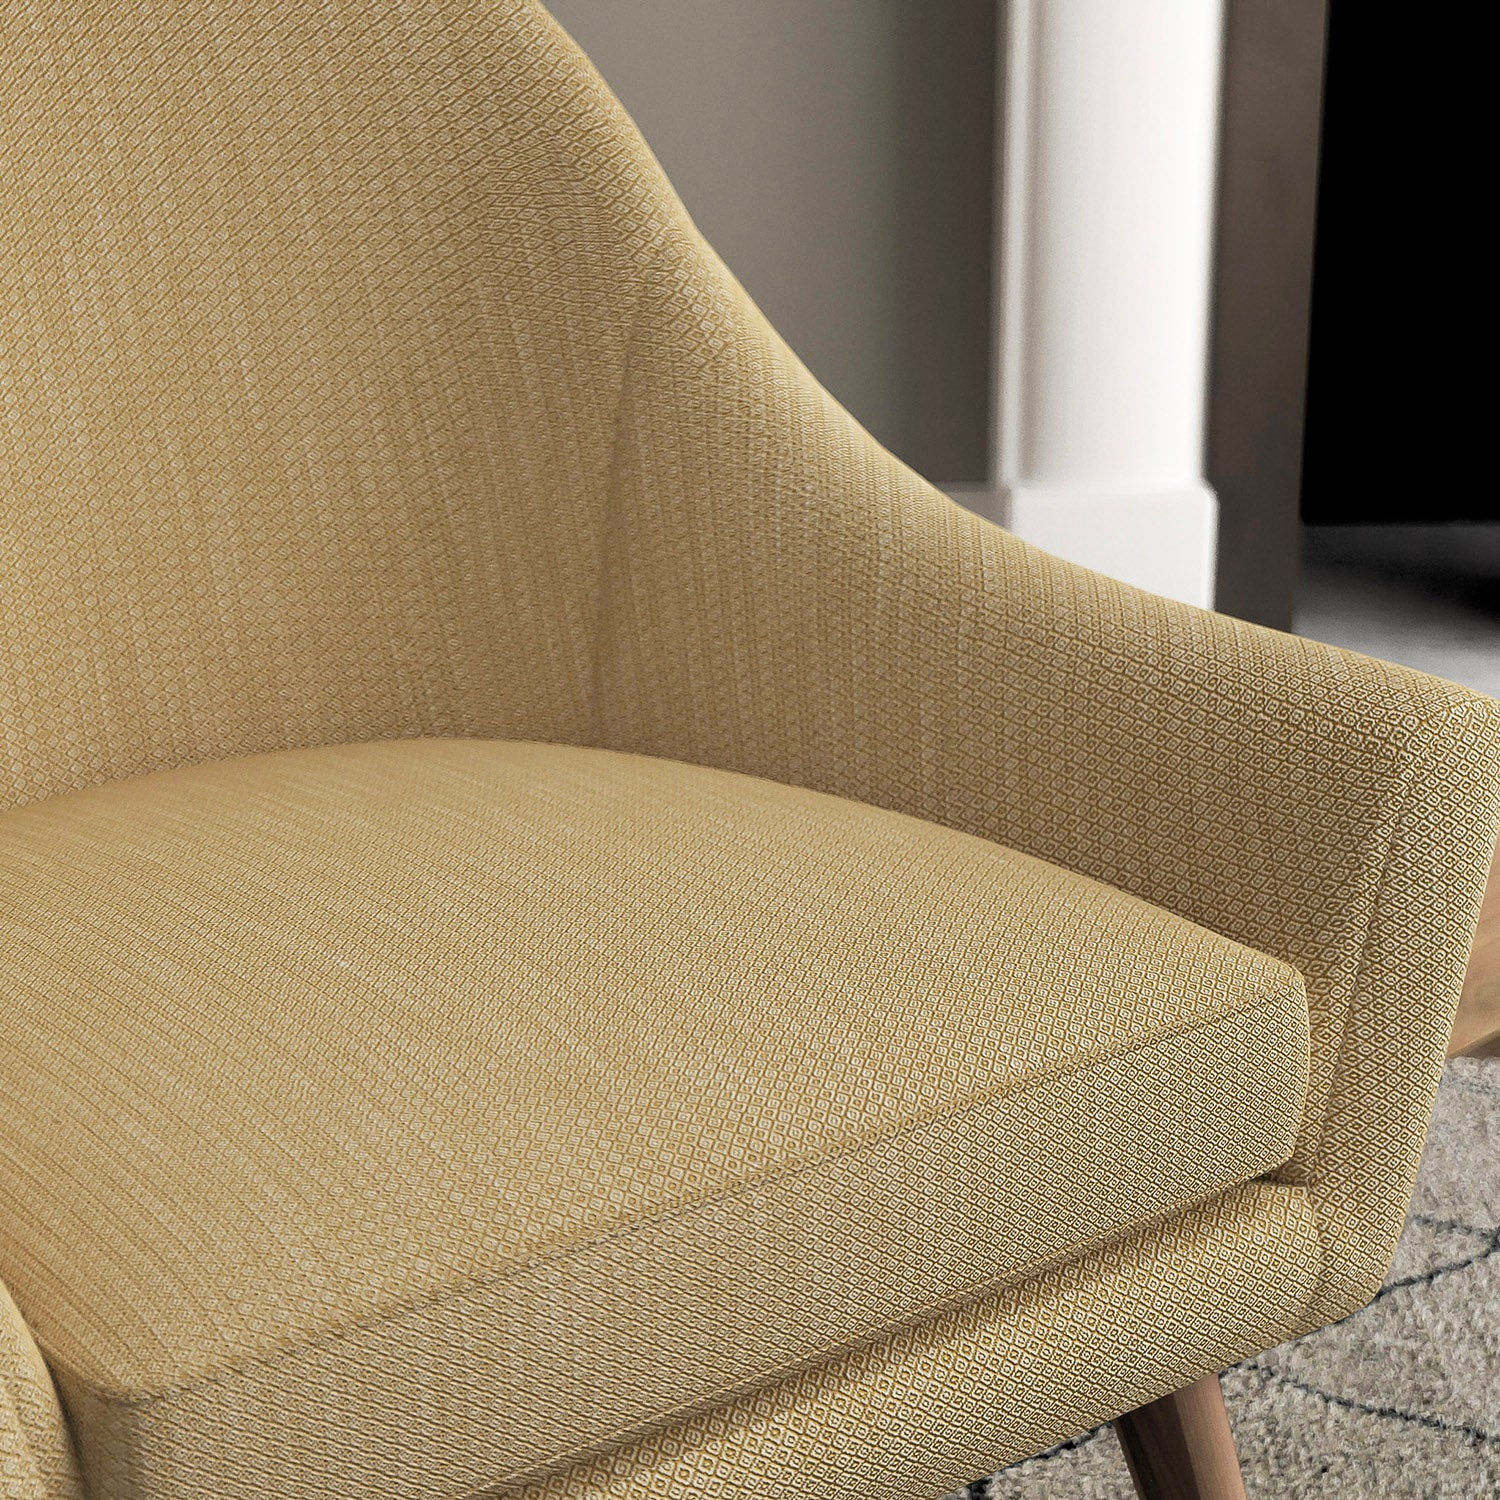 Chair with a yellow and neutral upholstery fabric with a small diamond weave fabric